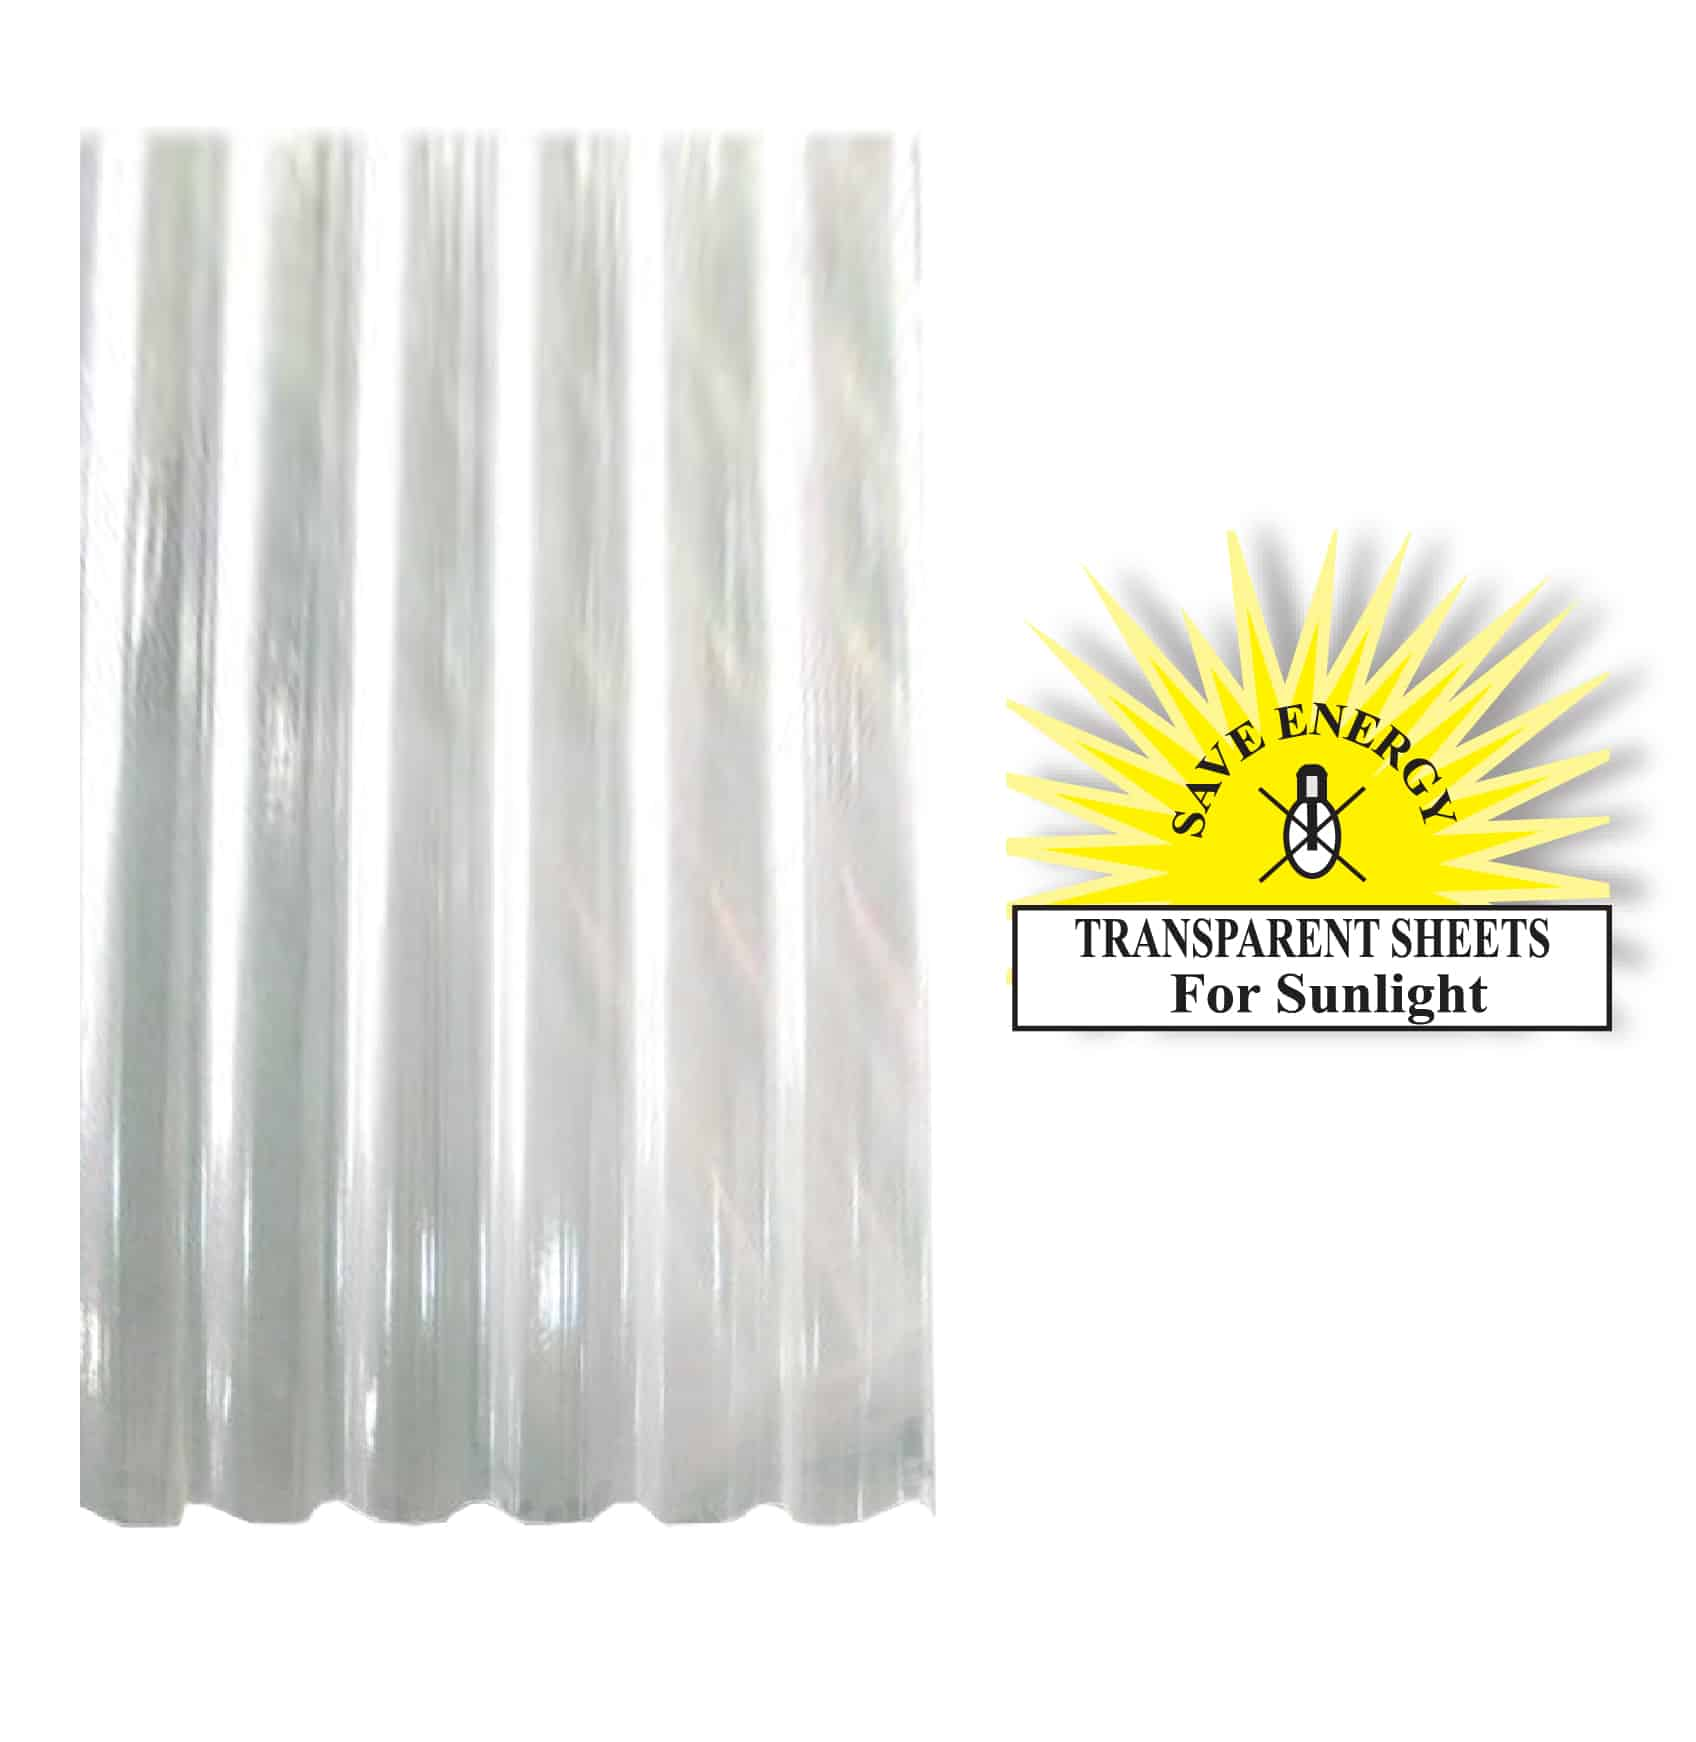 Fibre Glass Transparent Roofing Sheets Double MAT in Sri Lanka